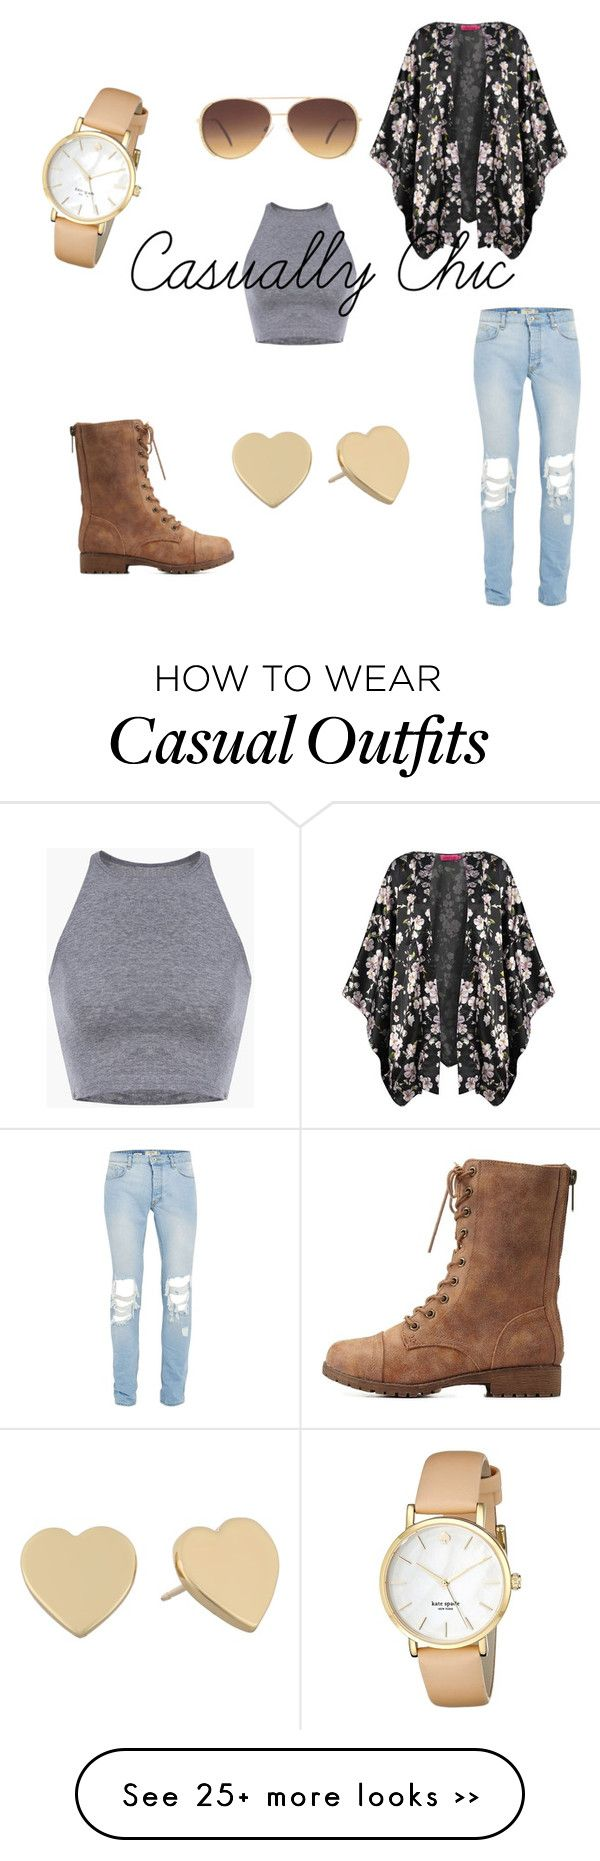 """""""Casually Chic"""" by darrlinng on Polyvore featuring Lane Bryant, Boohoo, Charlotte Russe and Kate Spade"""